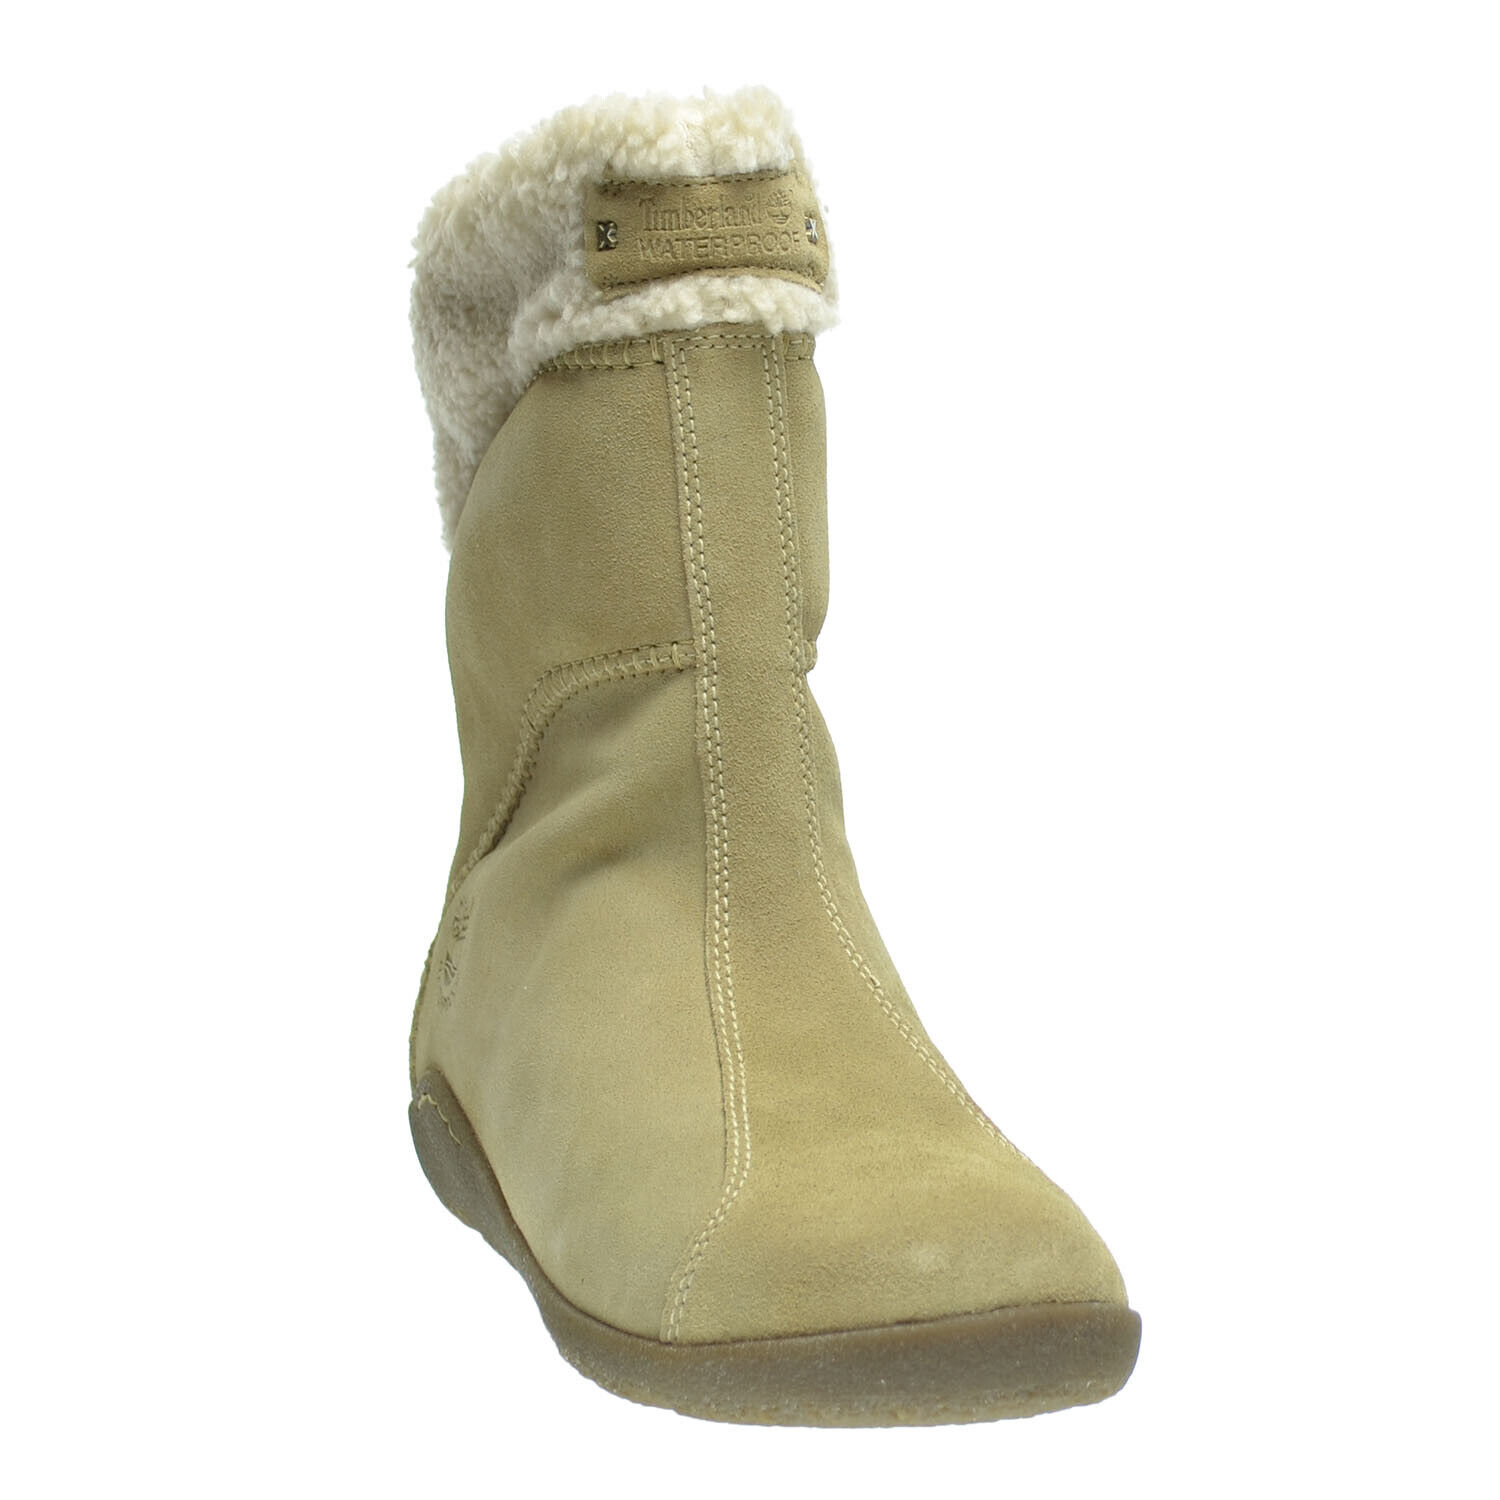 Timberland Avebury Women's Ankle Boots Sand-Light Brown 17655 1